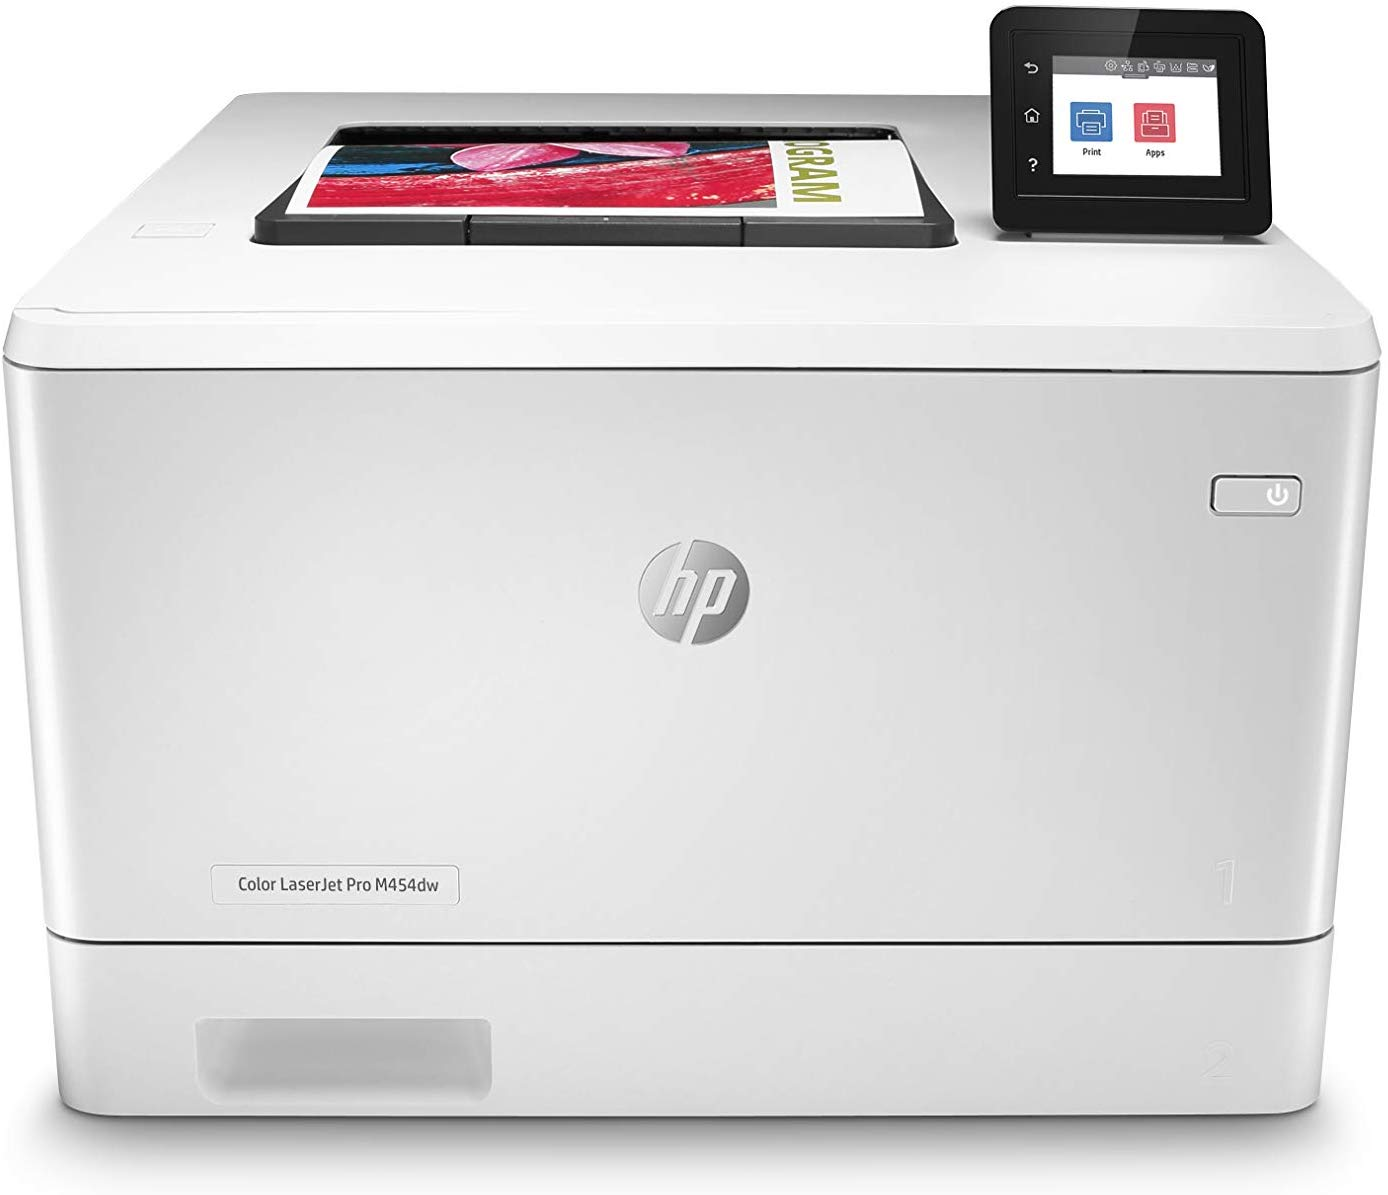 Hewlett Packard Color LaserJet Pro M454dw